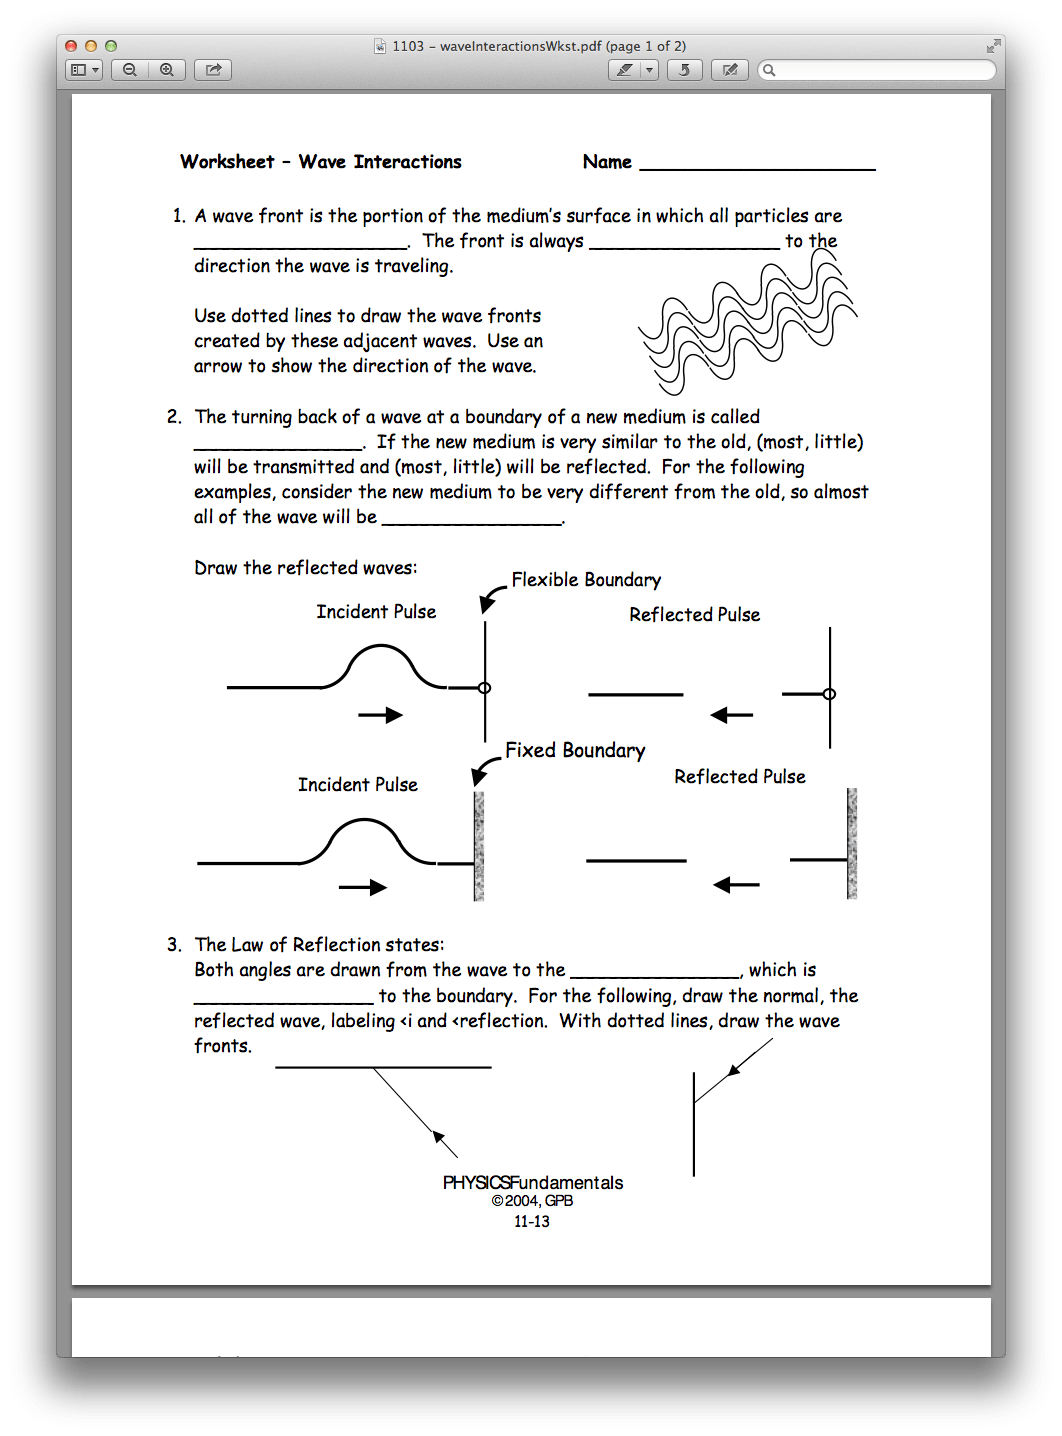 Worksheet Wave Interactions Answers